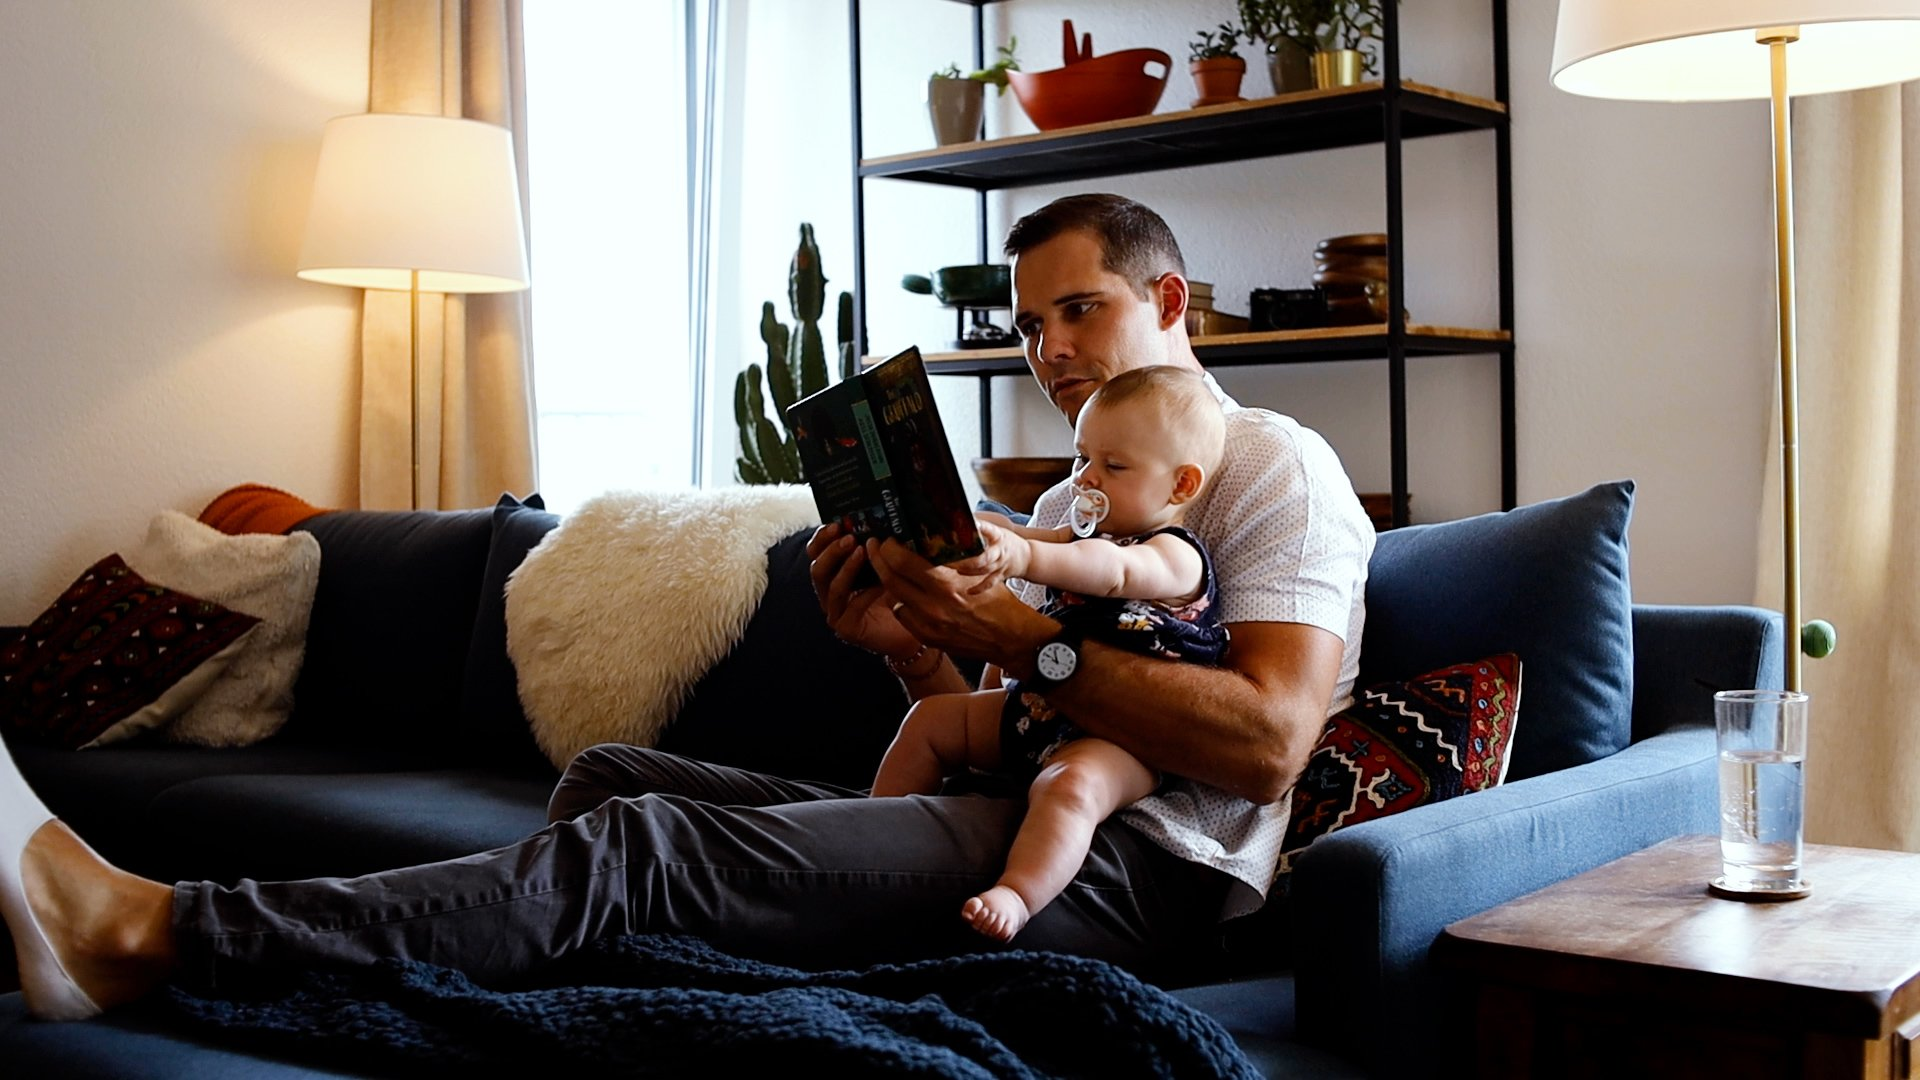 Dad reading to baby daughter